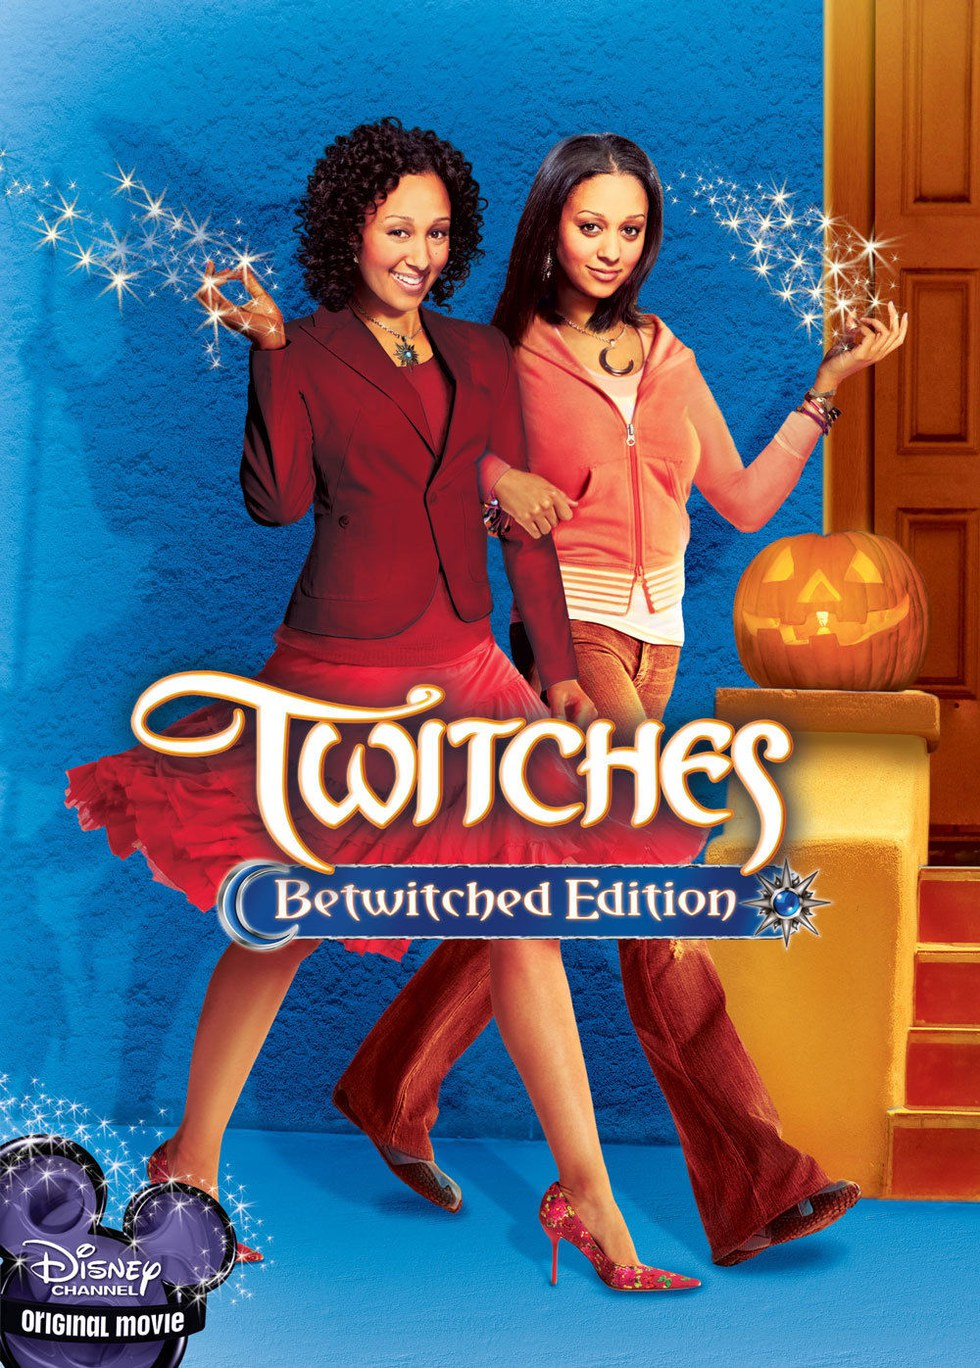 disney channel movies twitches